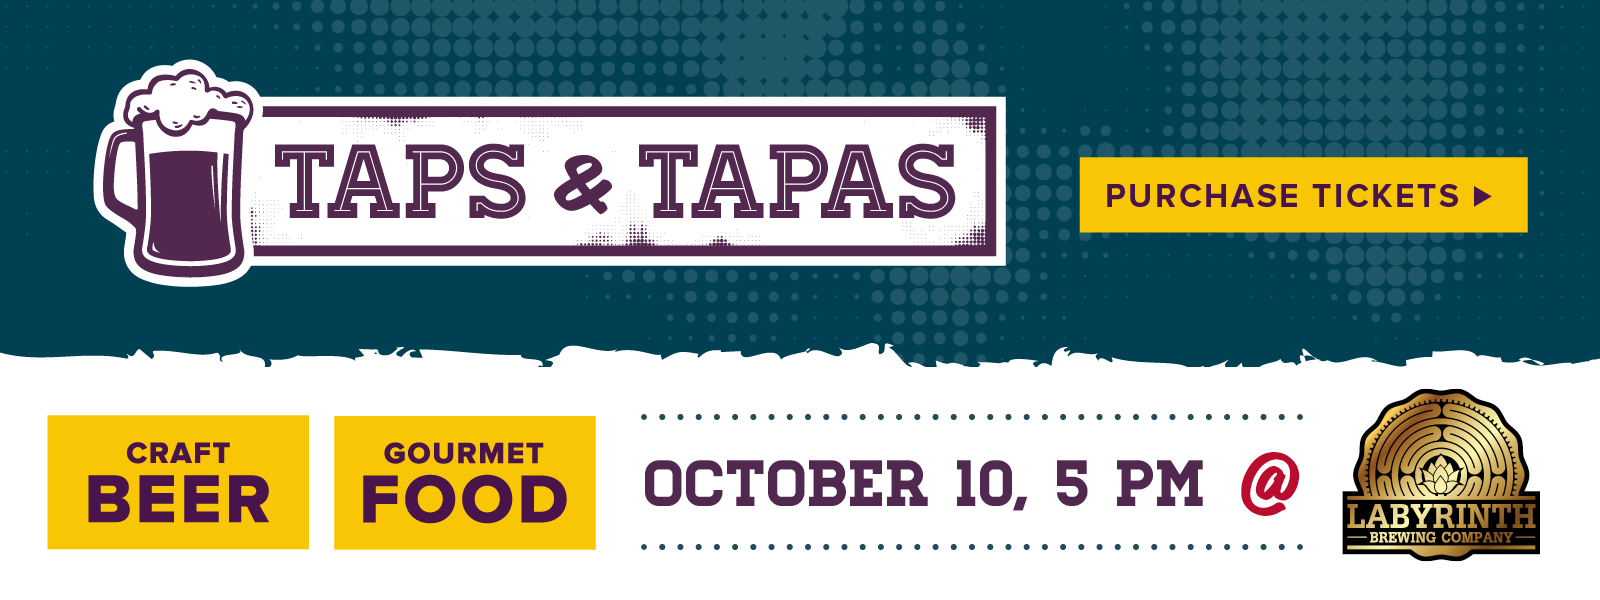 Taps and Tapas Foodshare Labyrinth Brewing Company Event